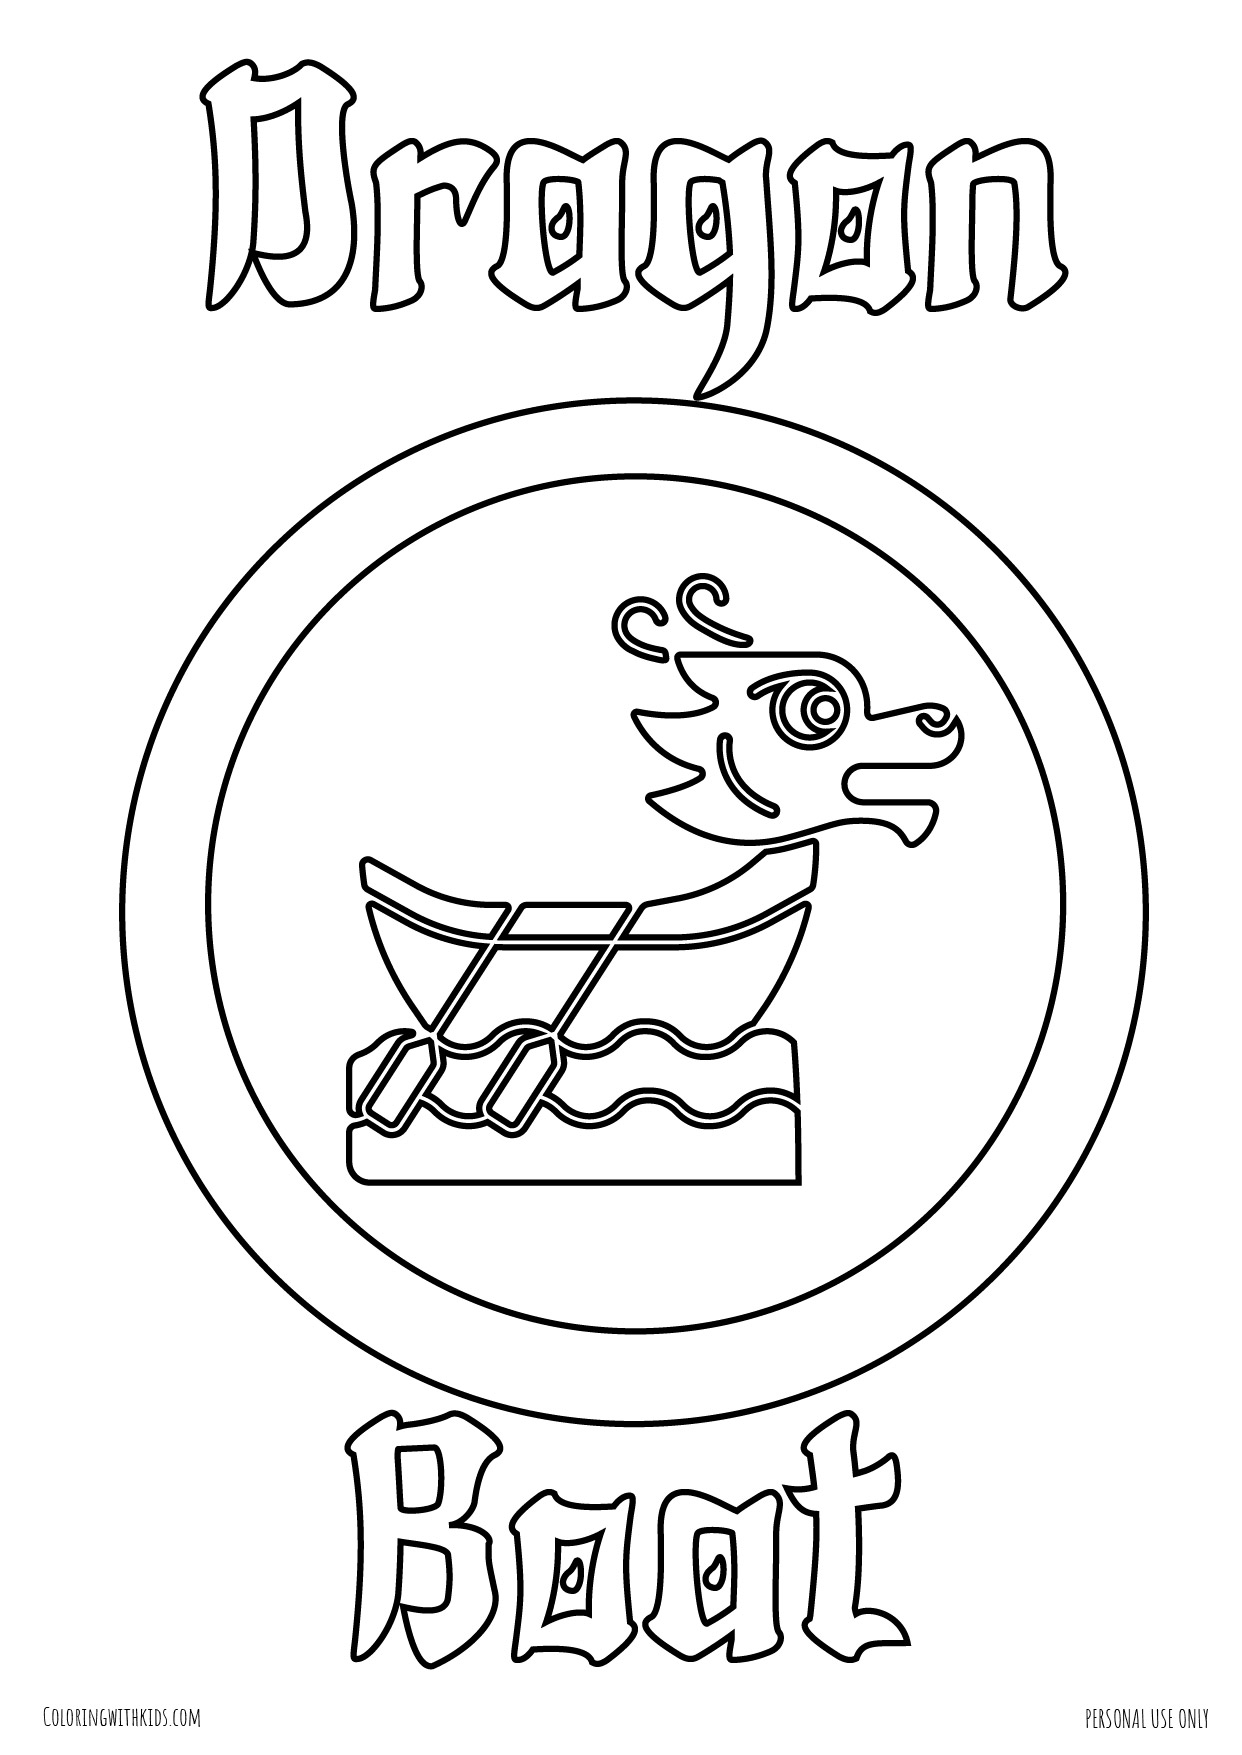 Simple Dragon Boat Coloring pages